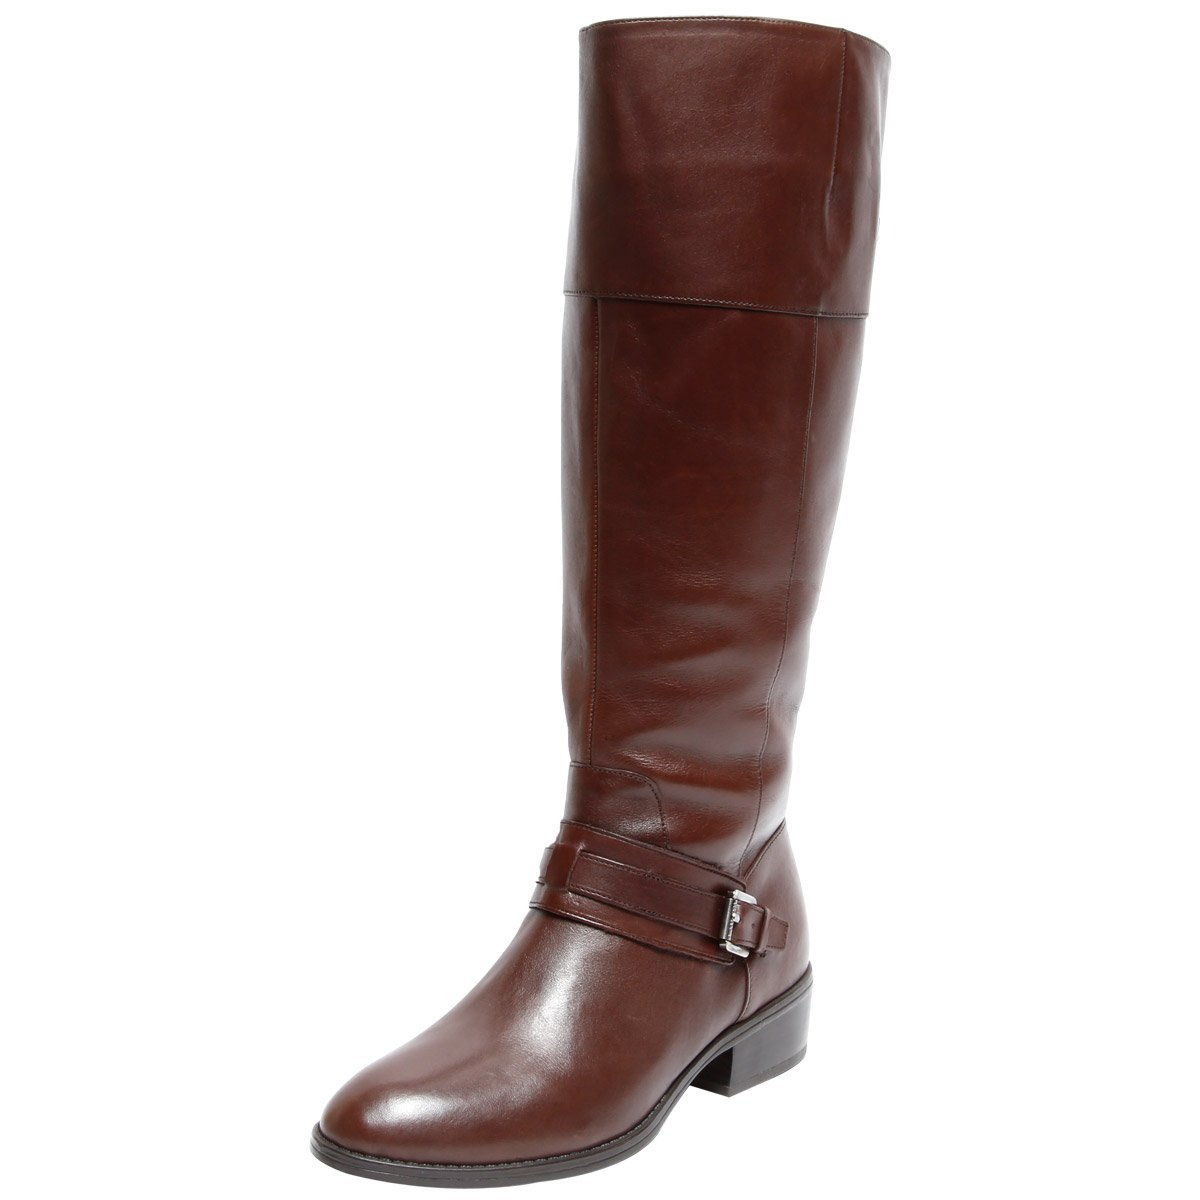 Shop wide calf boots, wide width knee high boots, over the knee boots, tall boots, Trendy Plus Size Fashion· Learn About Diva Dollars· Dresses, Tops, Knits· Join Our Mailing ListTypes: Plus Size Dresses, Tops, Bottoms, Coats, Jackets, Jeans, Intimates, Swimwear.